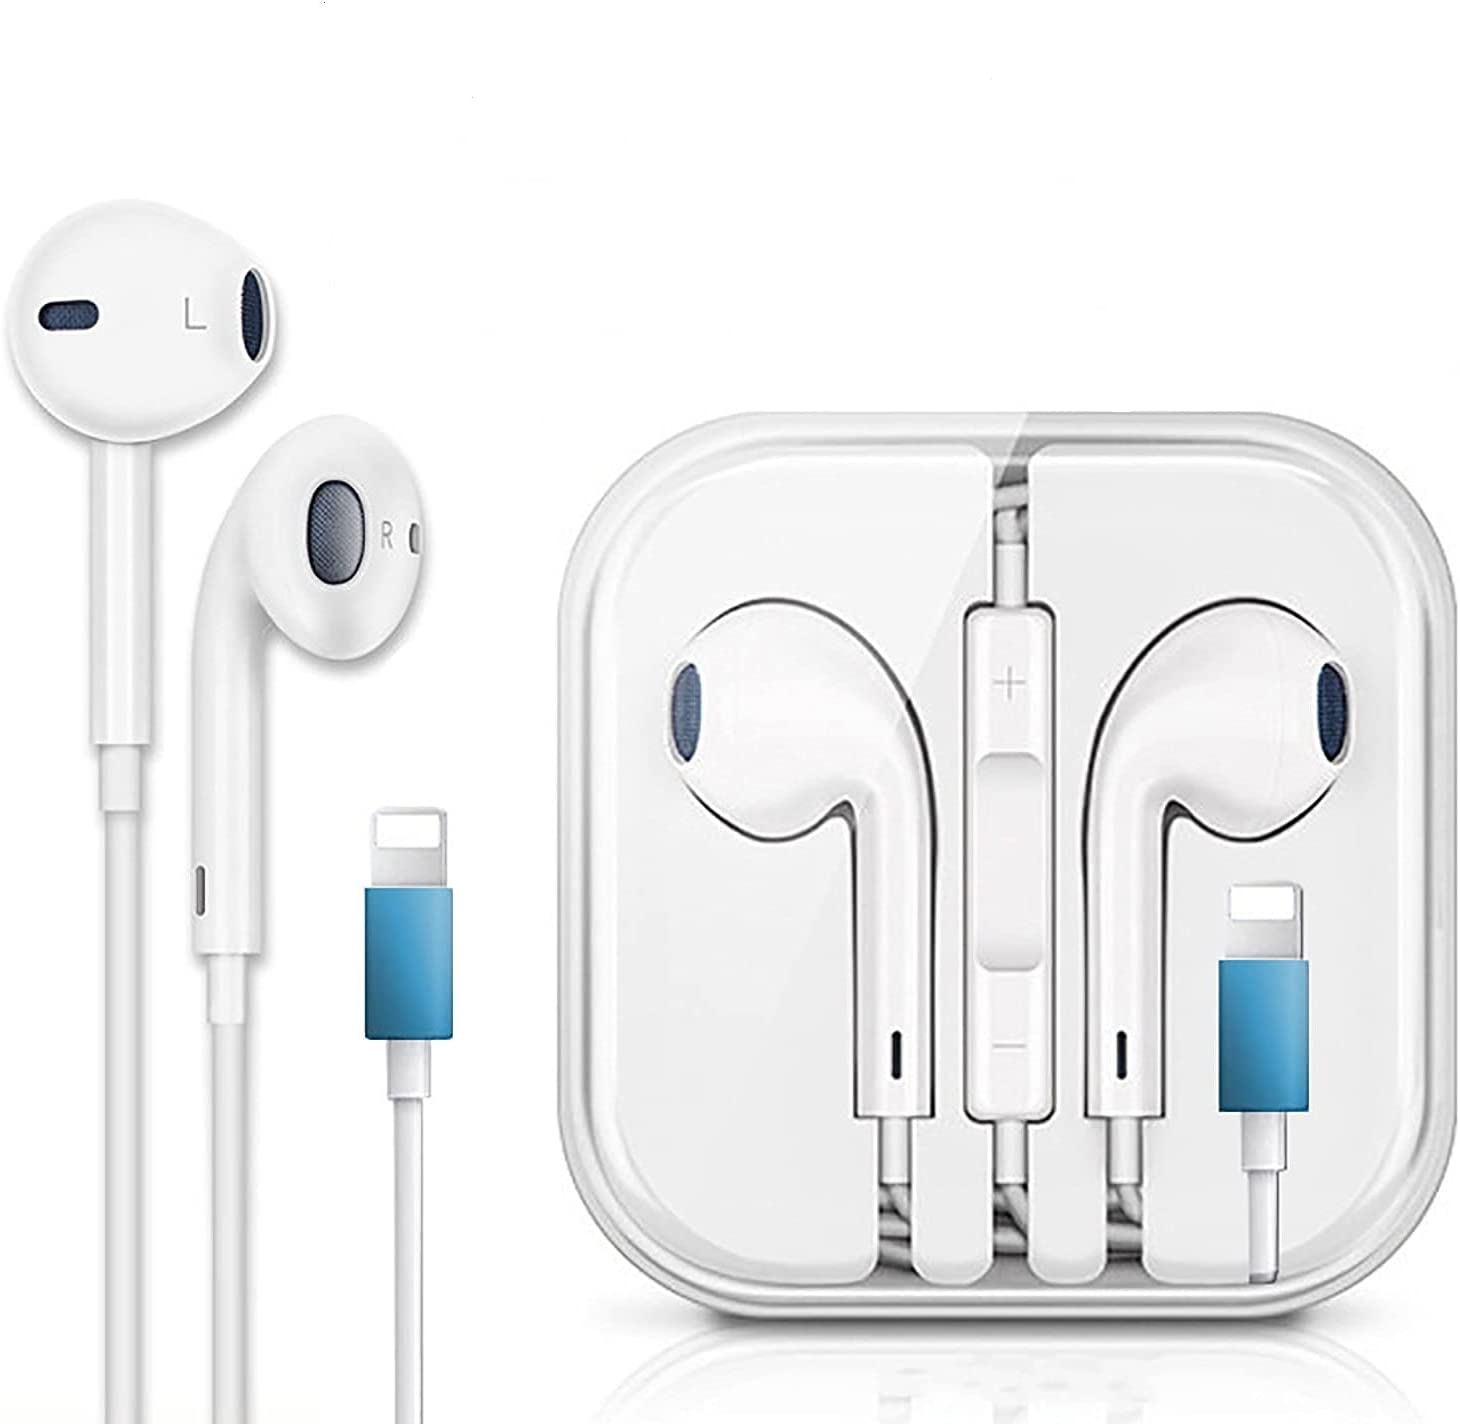 Wired Headset for iPhone Headphones Wired in Ear Magnetic Earbuds with Mic & Volume Control for iPhone xr Headphones Compatible with iPhone,7/7P,8/8P,X,XS,XS MAX,XR, iPad Air,iPad Pro,iPad